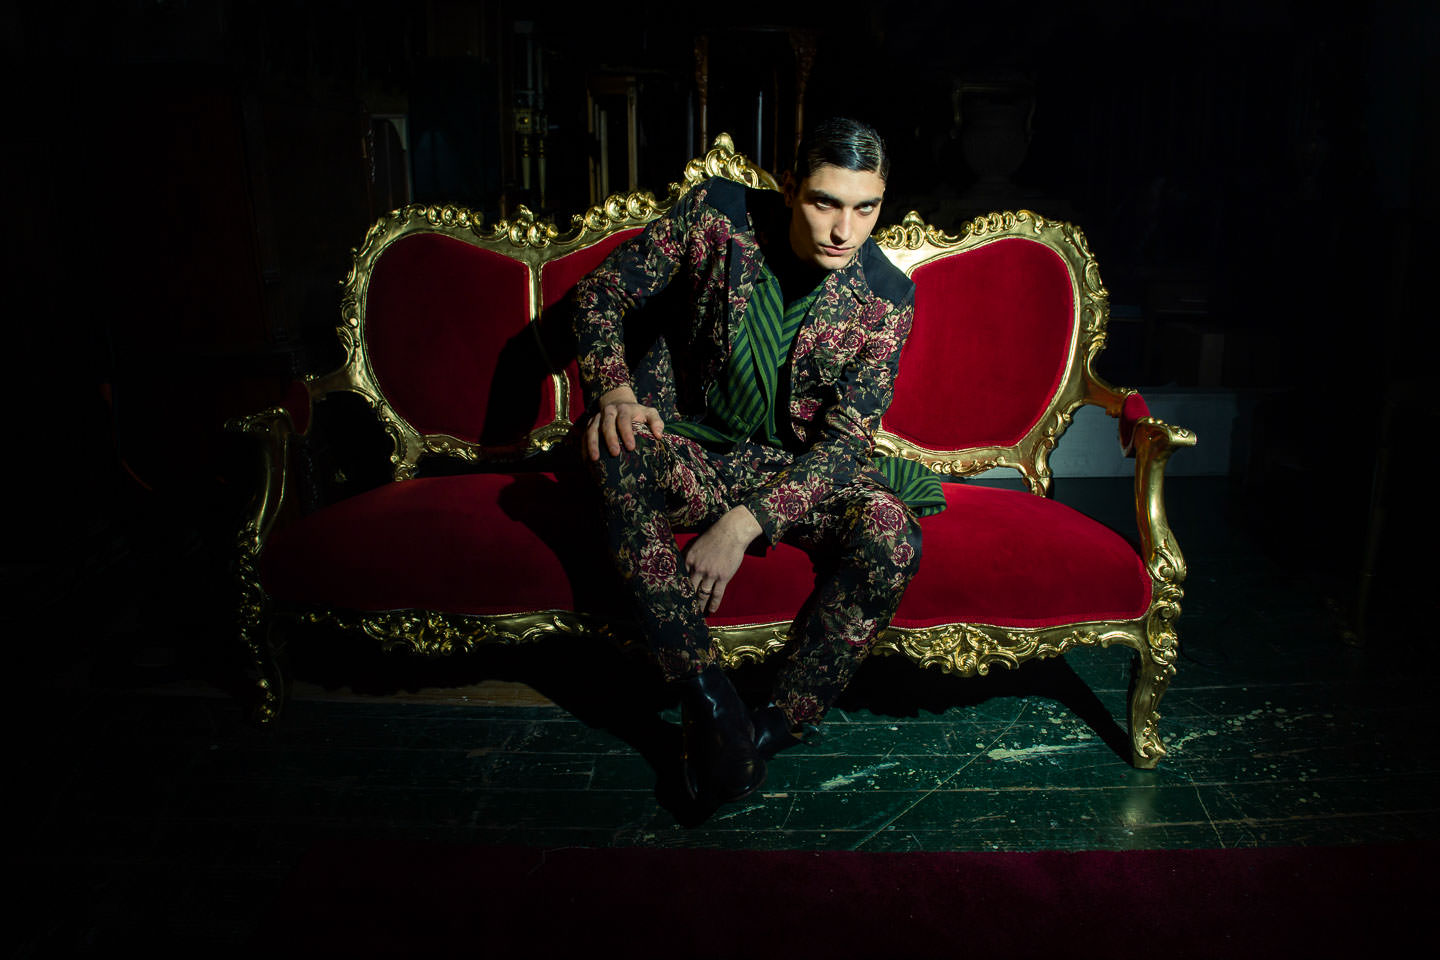 male model in floral suit jacket sitting on red antique couch with golden accents